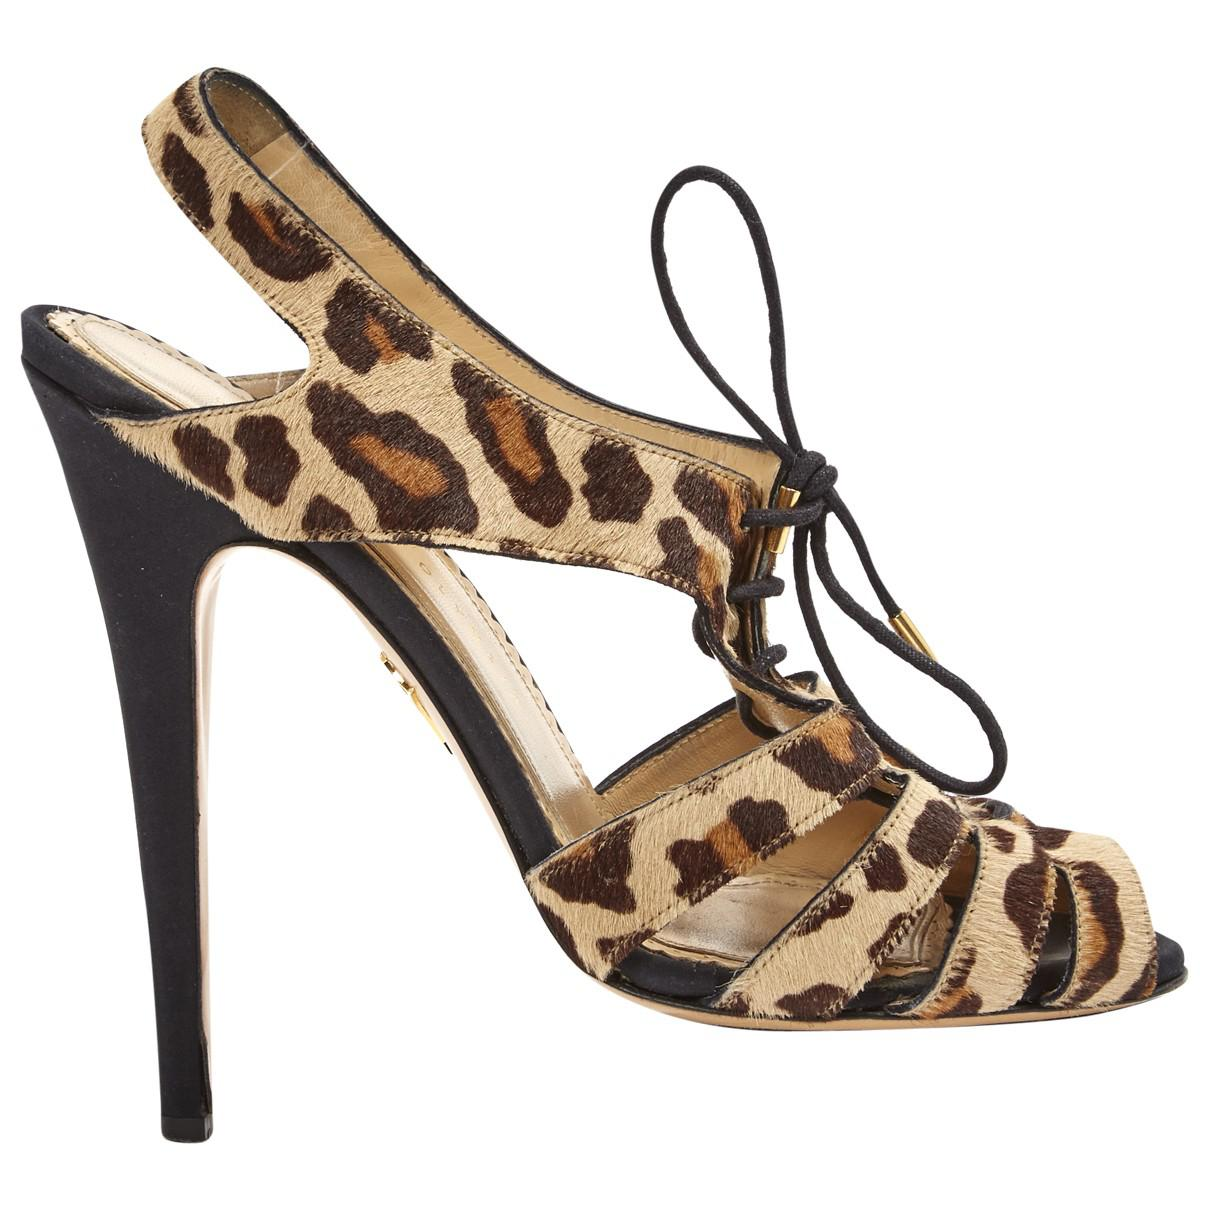 Pre-owned - Pony-style calfskin sandal Charlotte Olympia kbBRUO